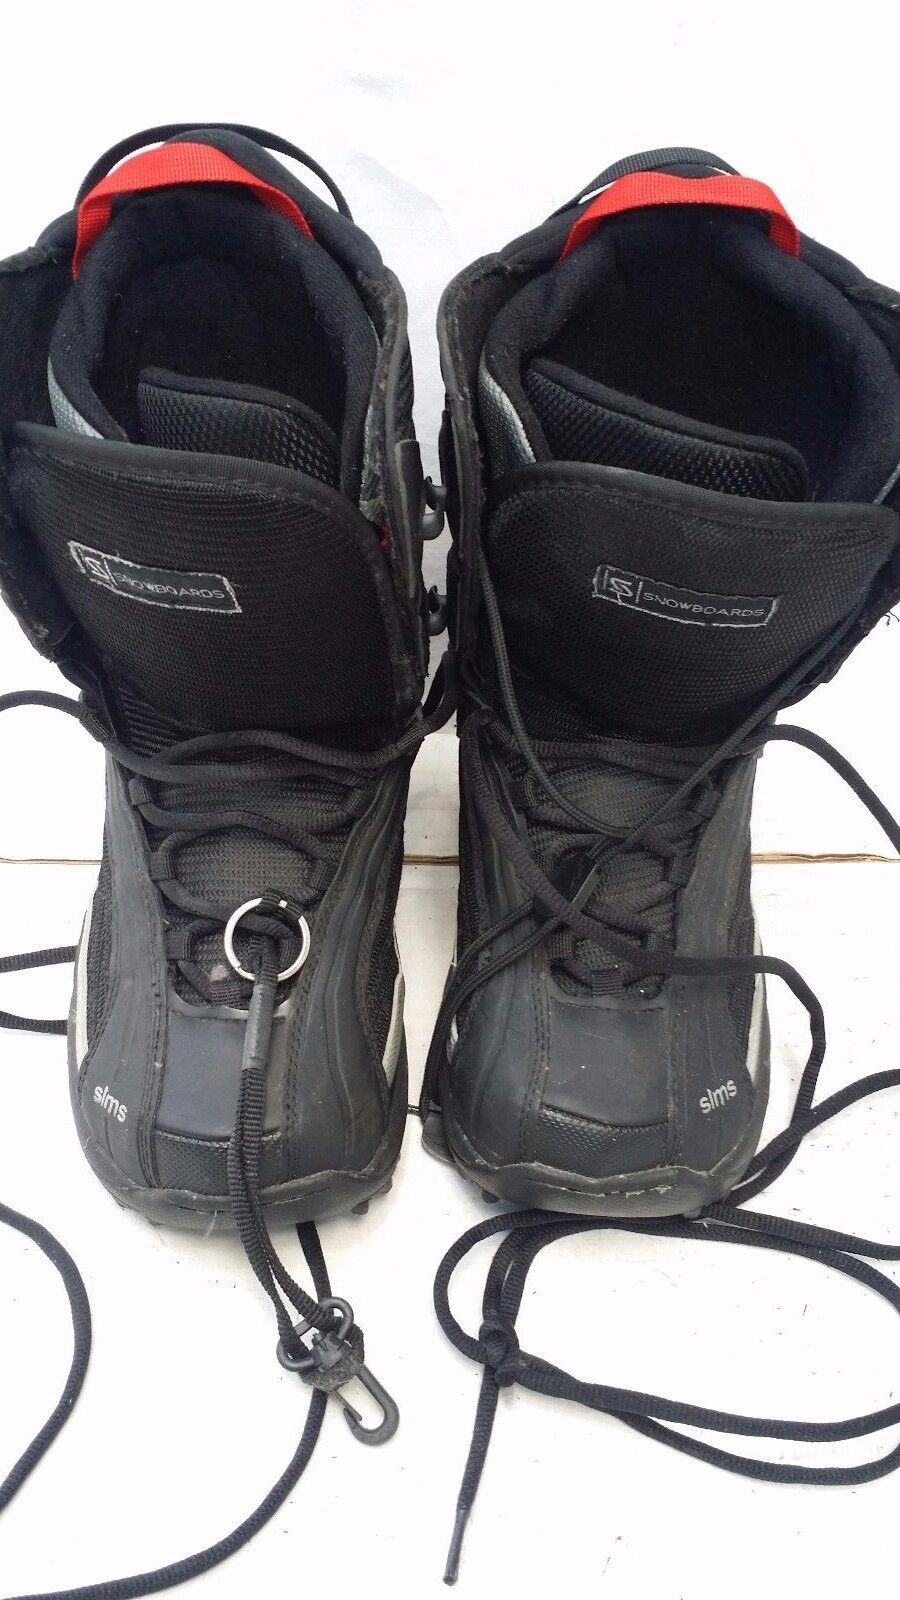 Men's  Sims Snowboarding Boots Size 7  save up to 30-50% off